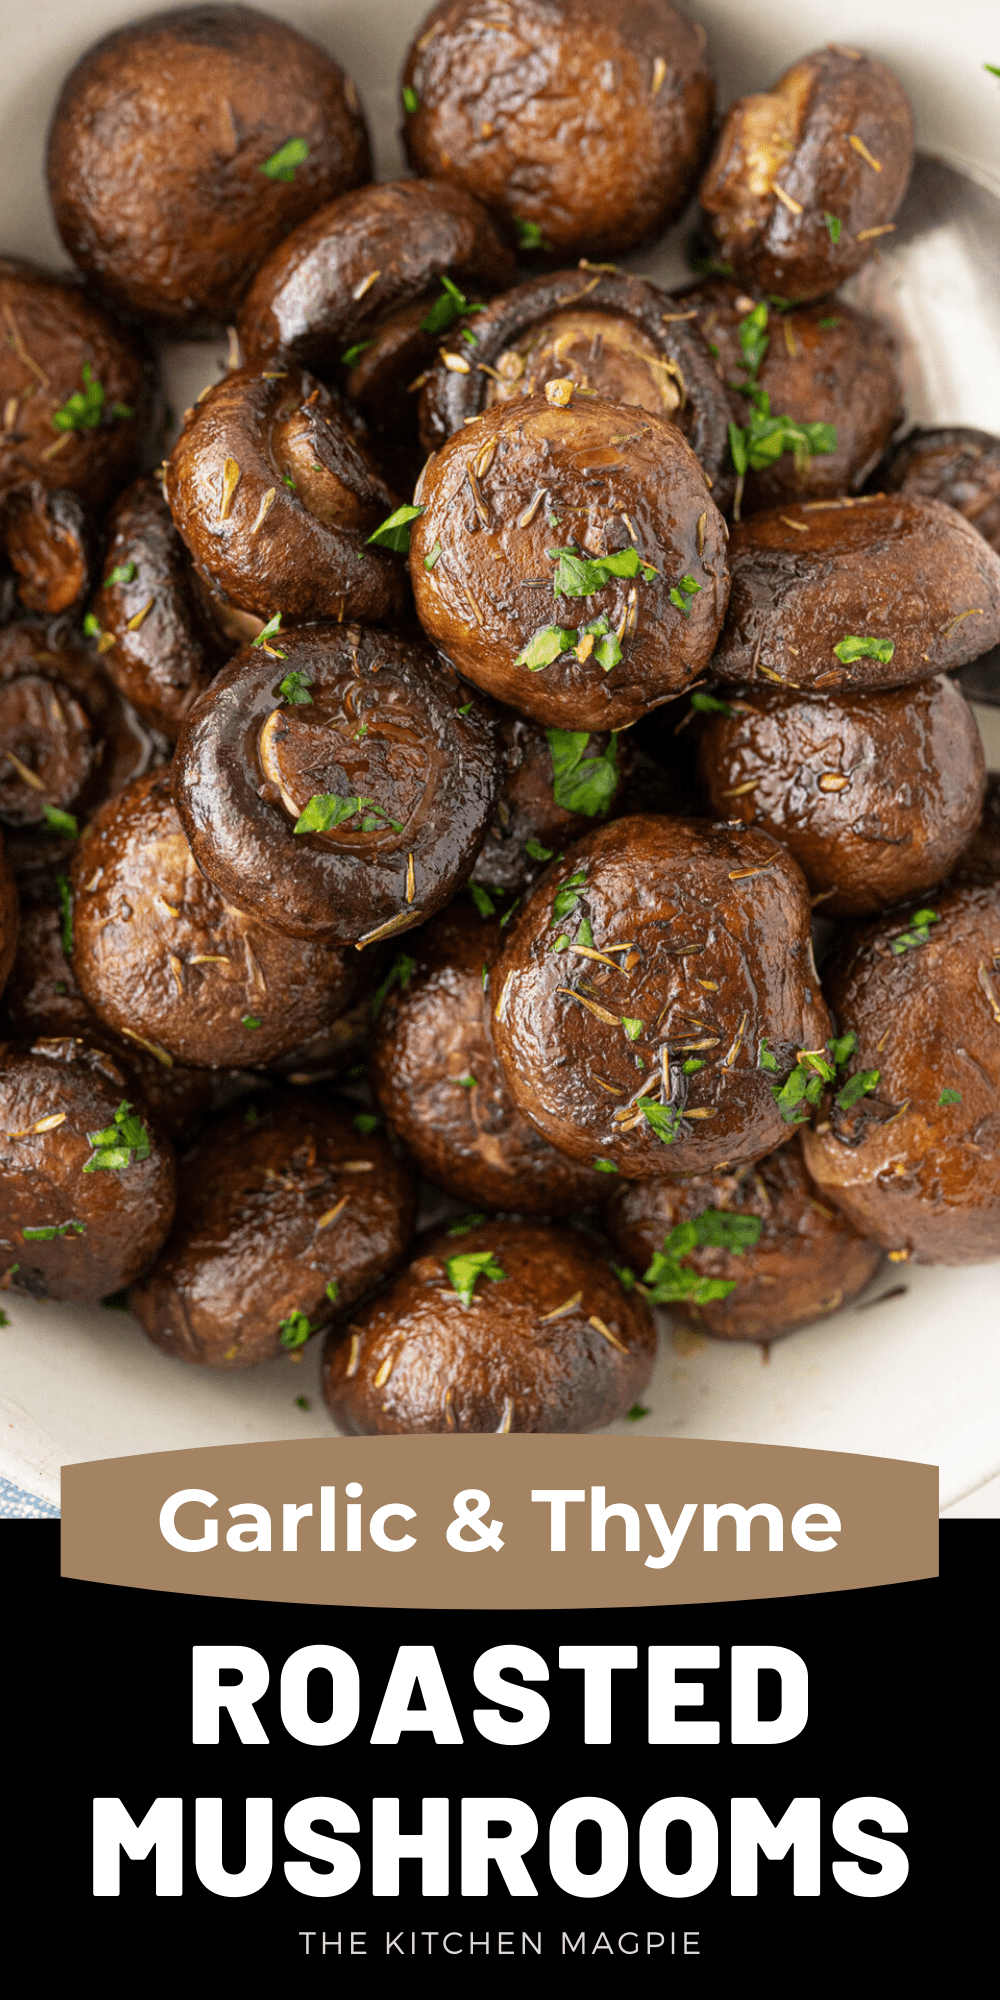 These fabulous roasted mushrooms are tossed and coated in a decadent buttery garlic and thyme sauce then baked in the oven to mushroom lover perfection while you are preparing the rest of your meal!